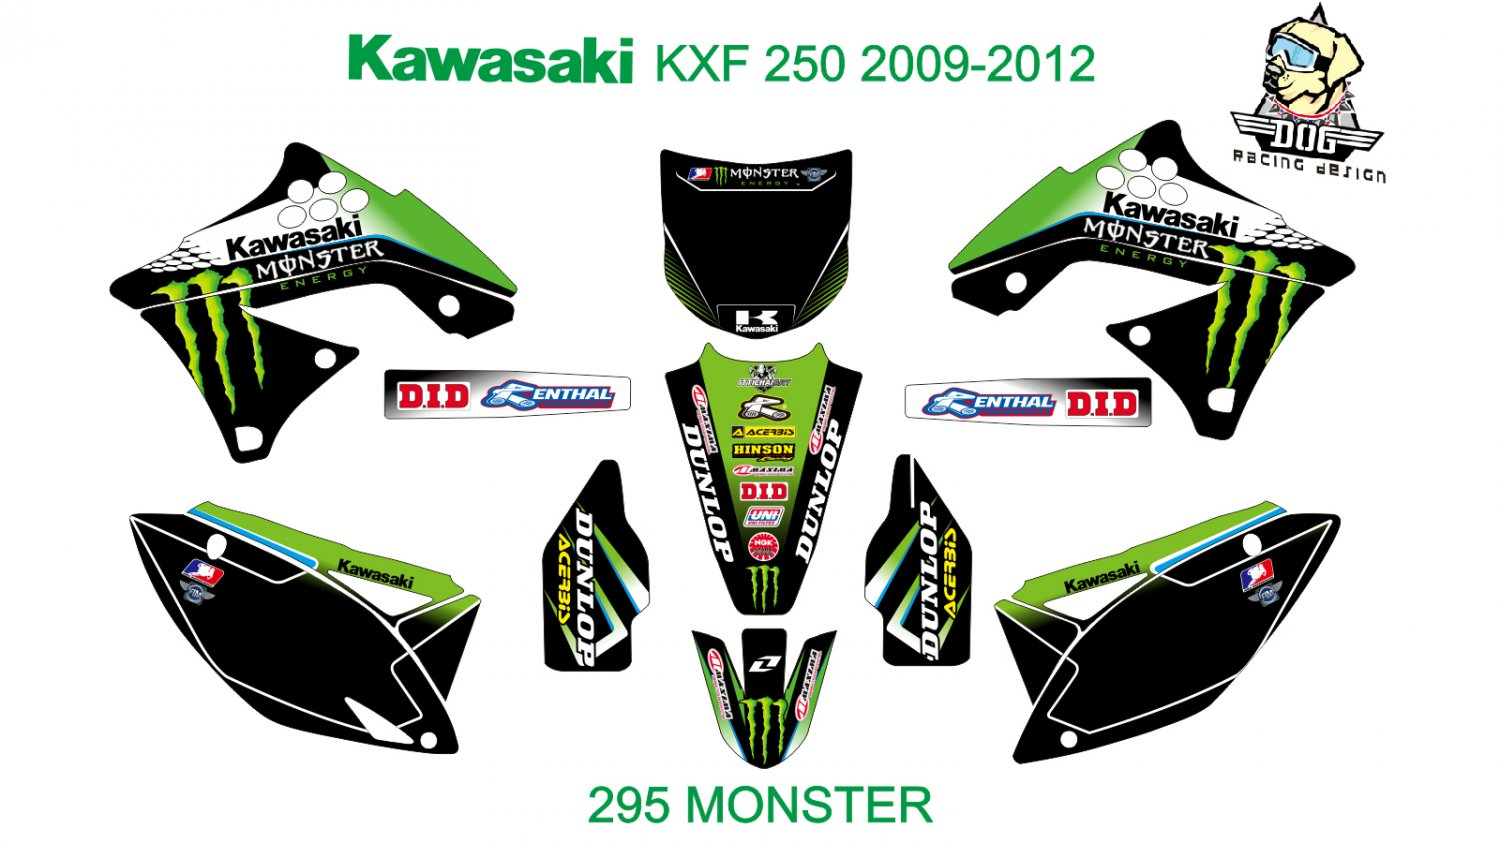 KAWASAKI KXF 250 2009-2012 GRAPHIC DECAL KIT CODE.295